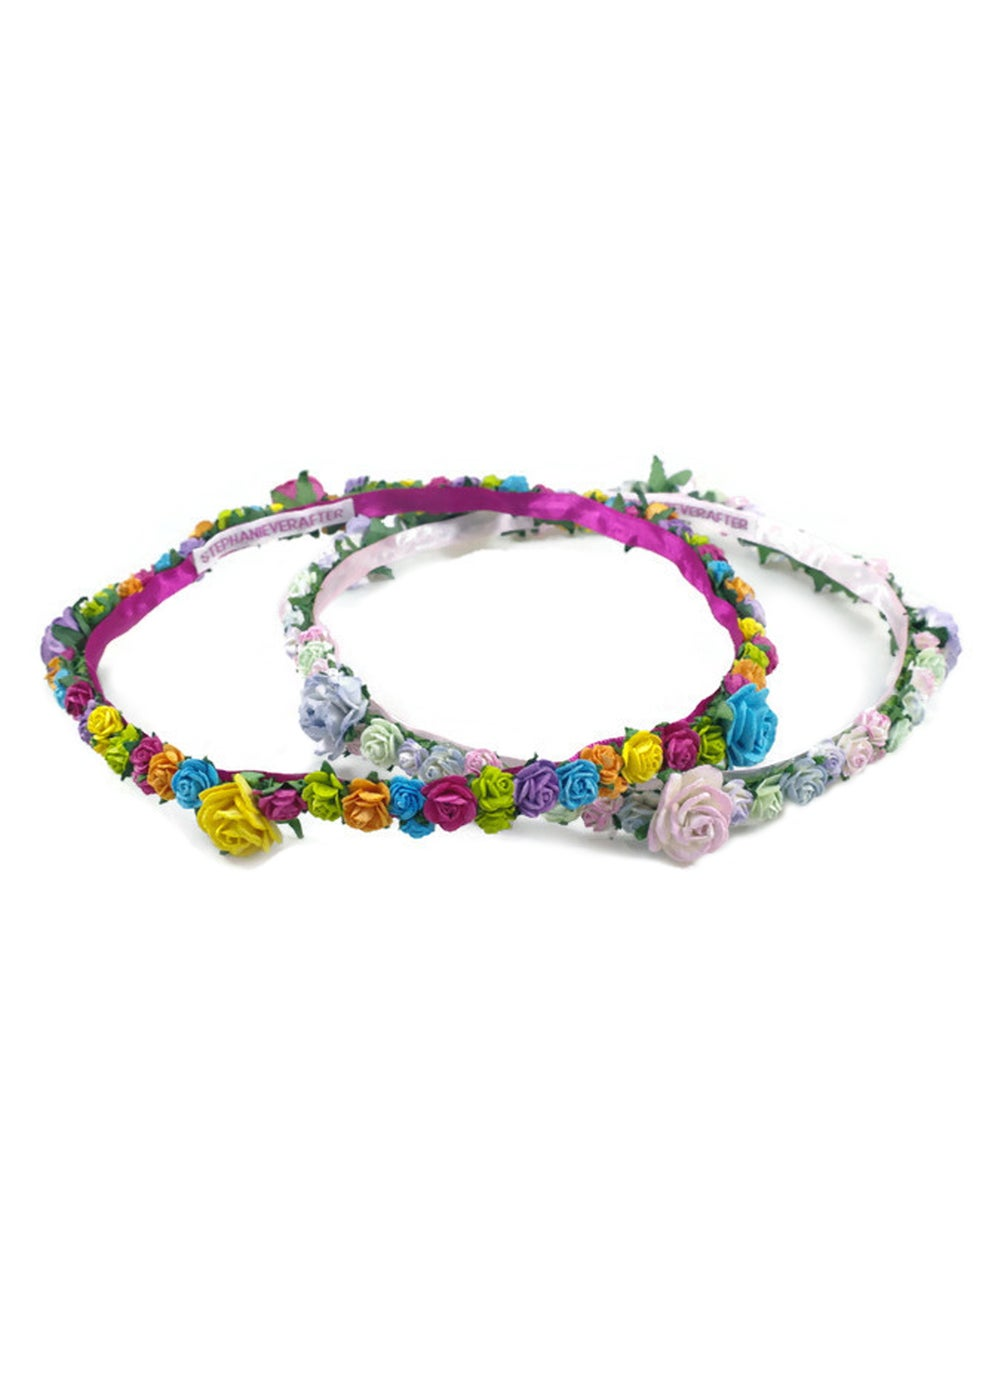 Image of Sadie Garland - Brights or Pastels